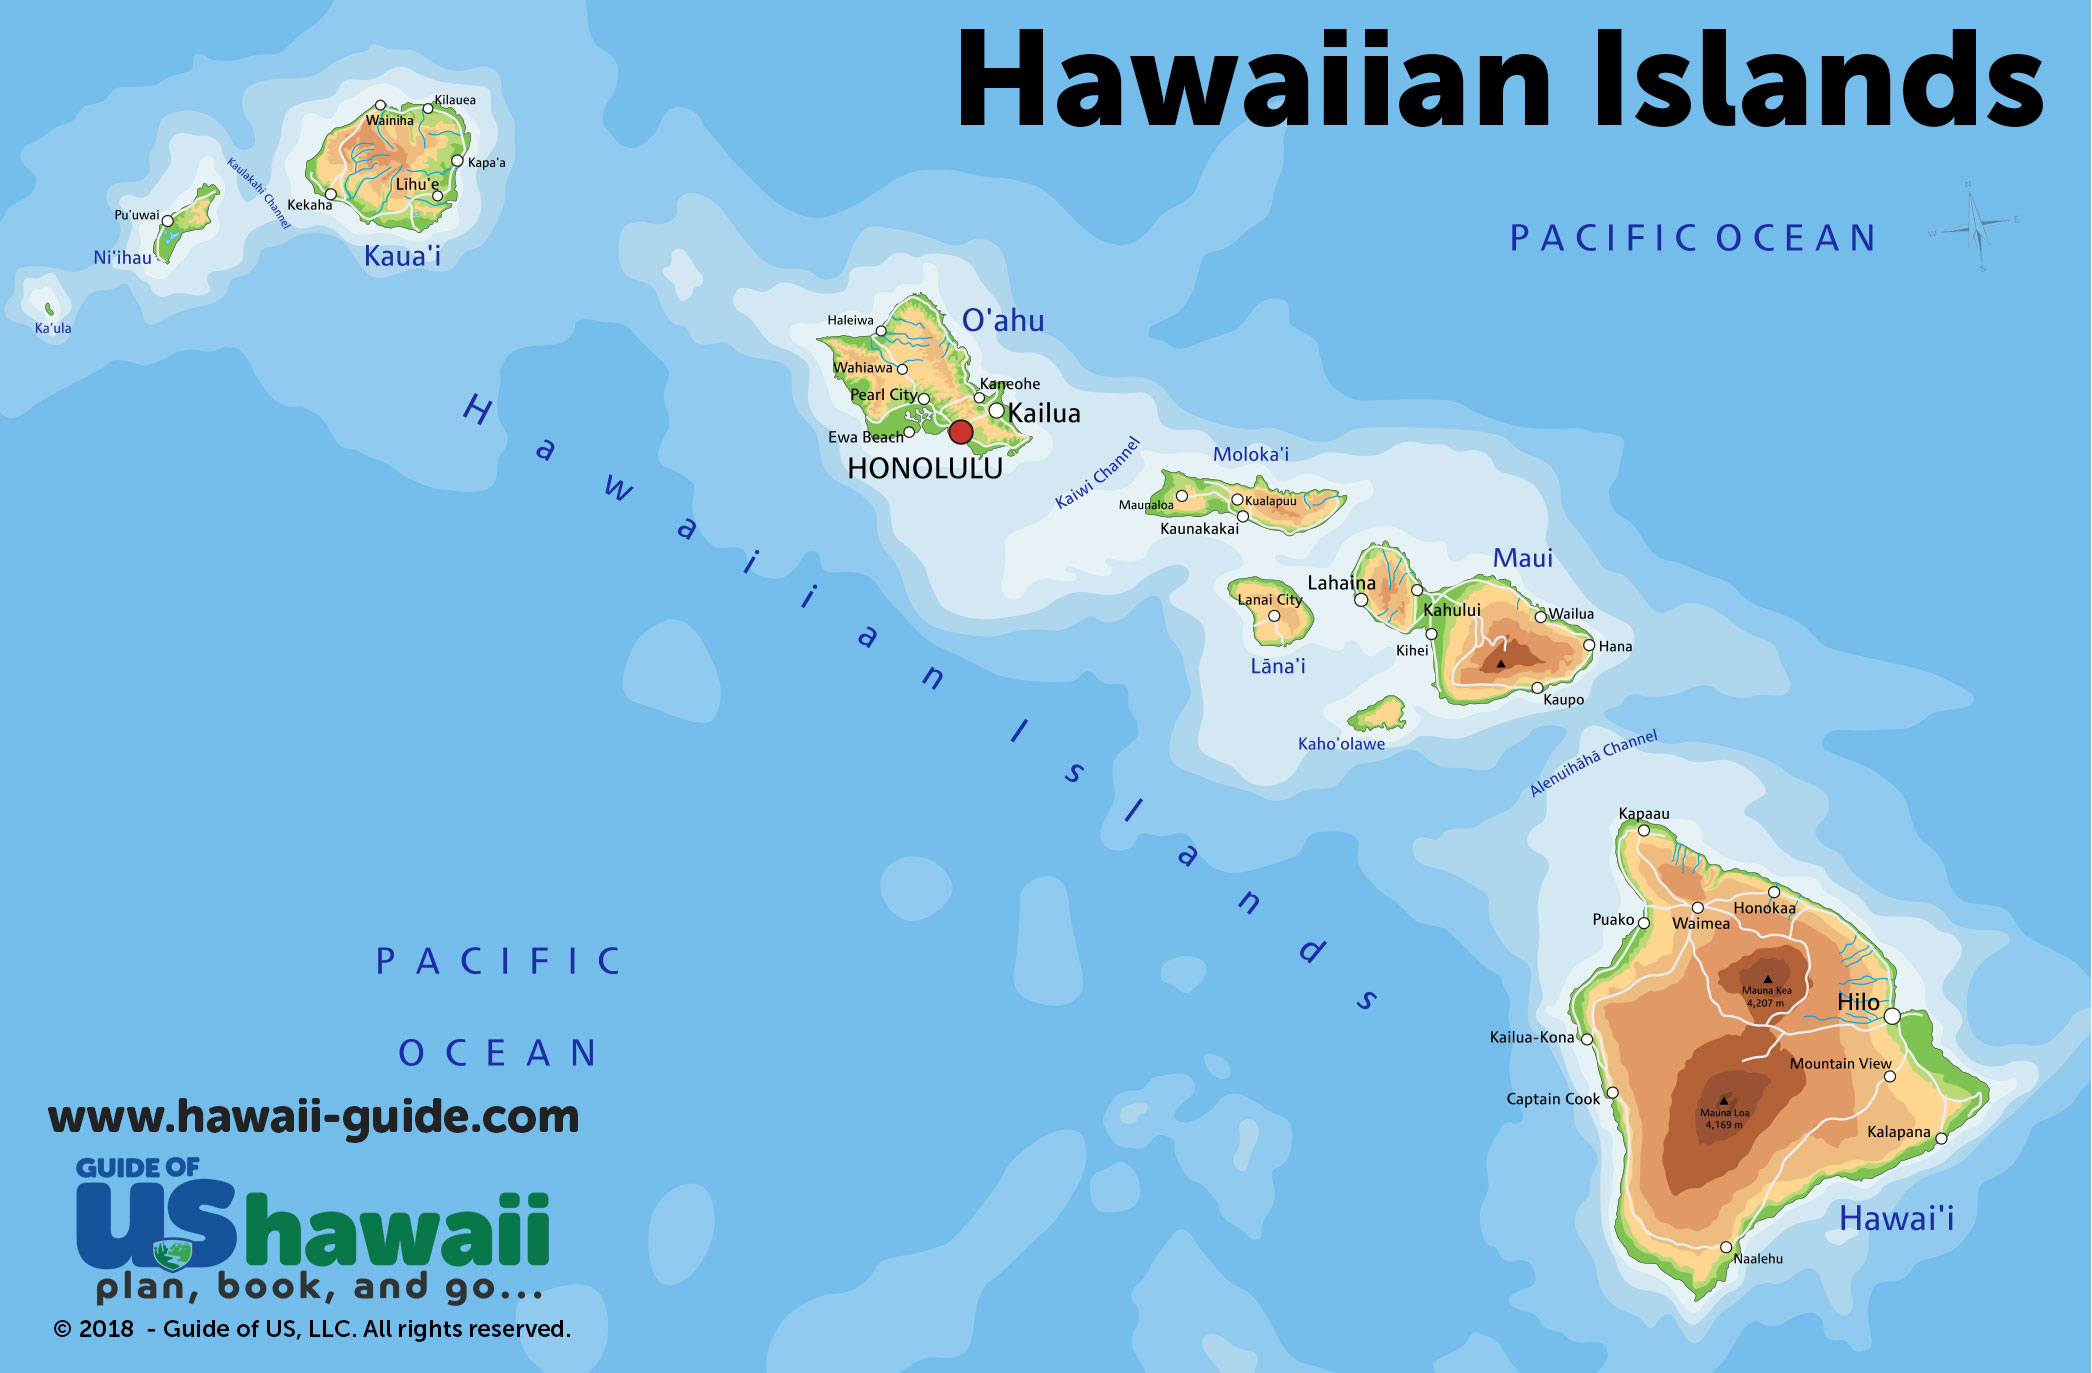 Hawaiian Island Map Maps of Hawaii: Hawaiian Islands Map